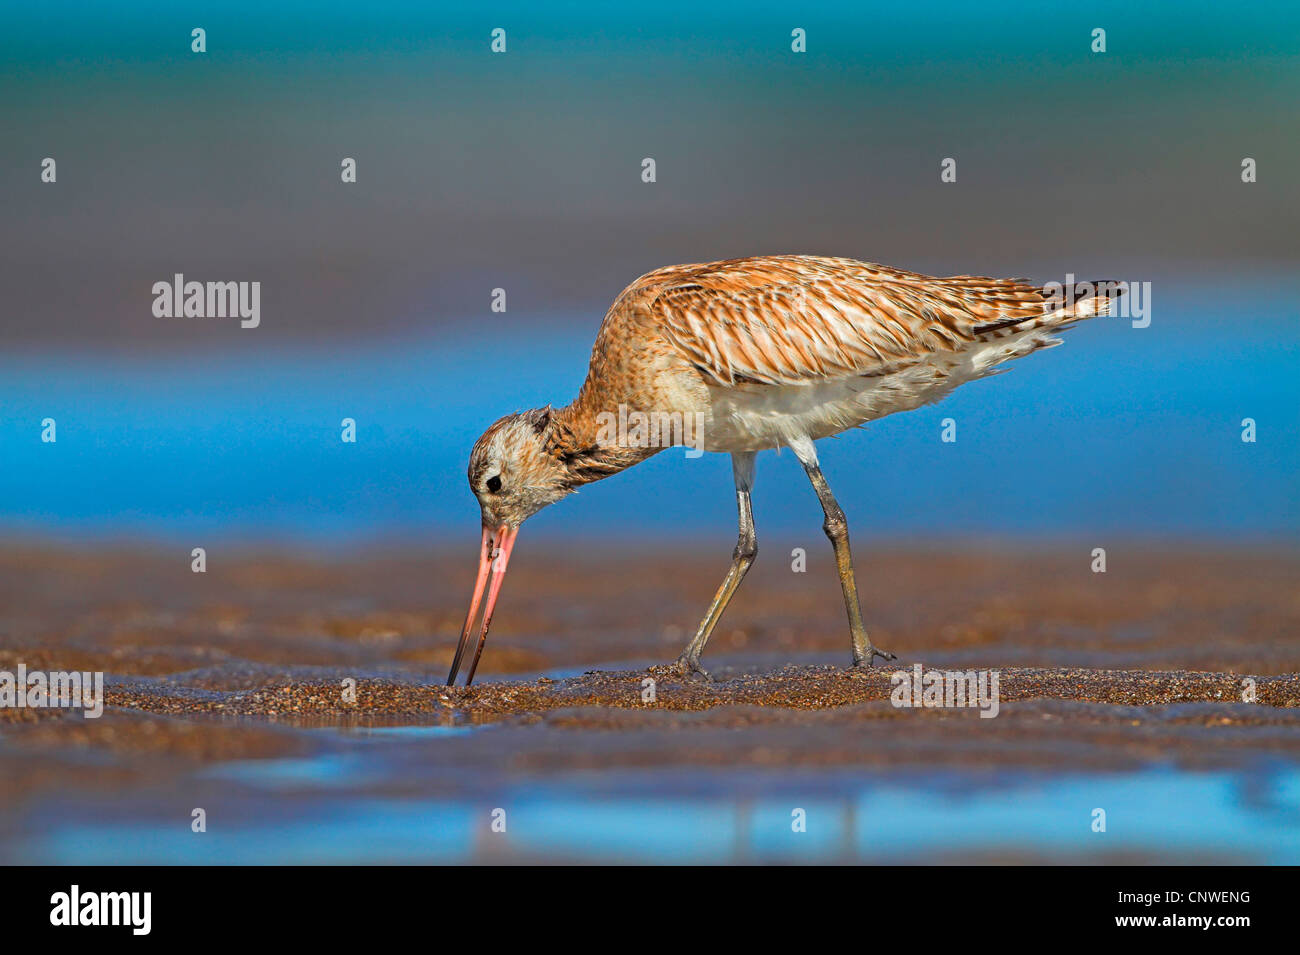 black-tailed godwit (Limosa limosa), on the feed on the waterfront sticking the beak into the sand, Oman - Stock Image